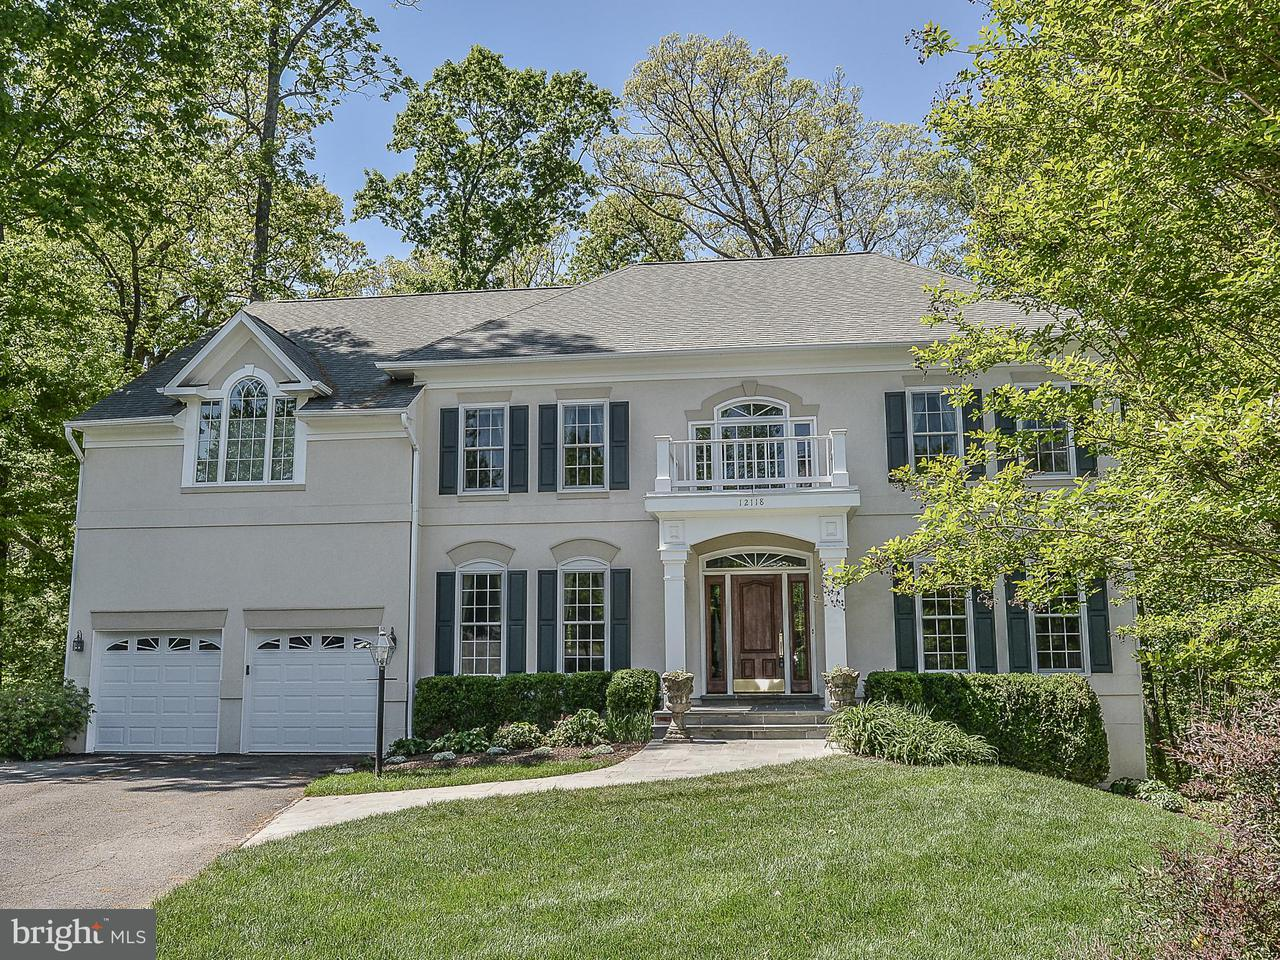 Maison unifamiliale pour l Vente à 12118 Walnut Branch Road 12118 Walnut Branch Road Reston, Virginia 20194 États-Unis